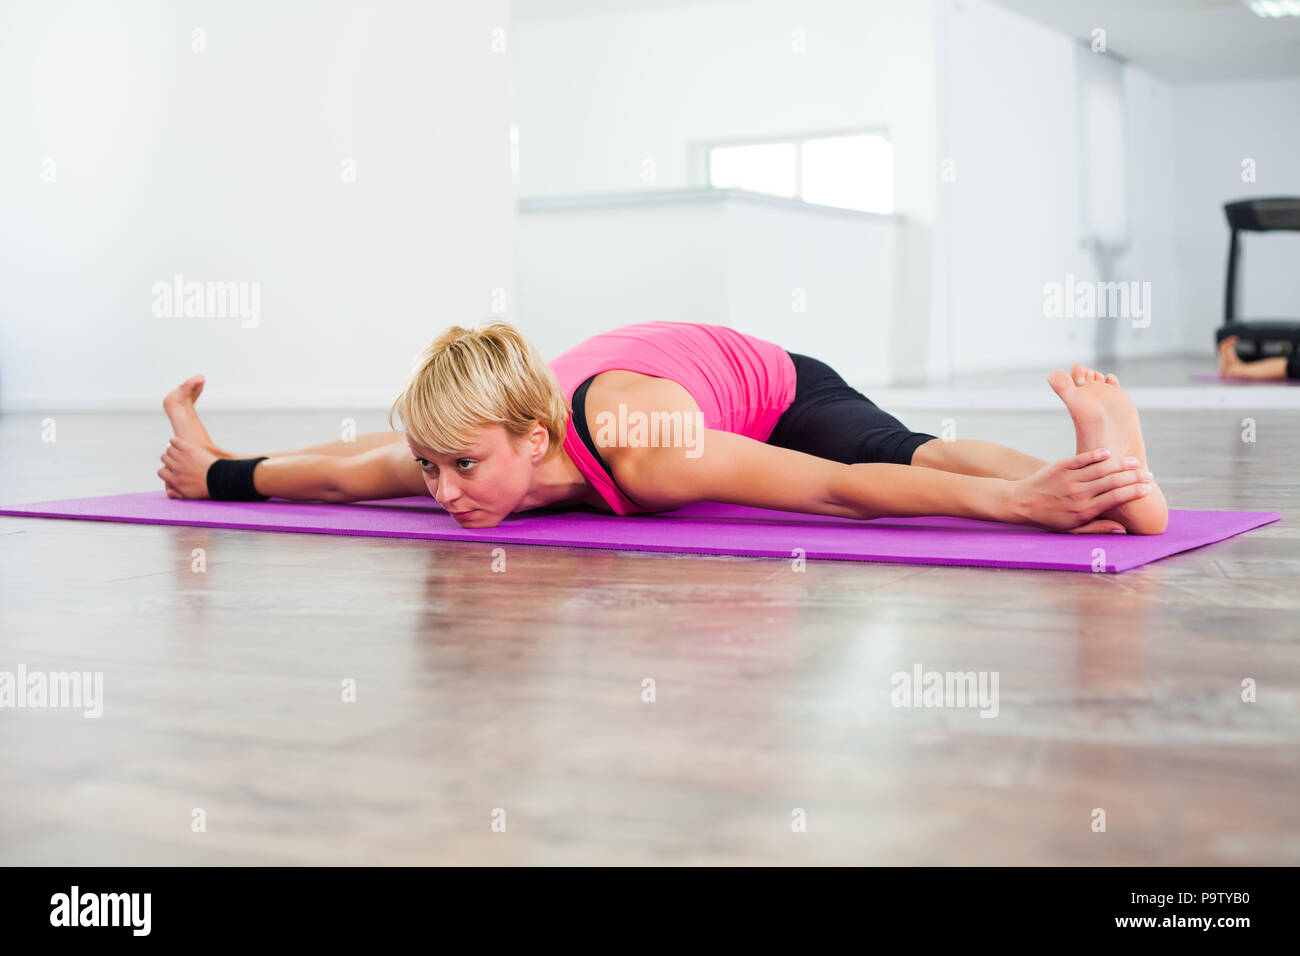 Young woman practicing yoga, Upavistha Konasana / Seated Angle Pose - Stock Image